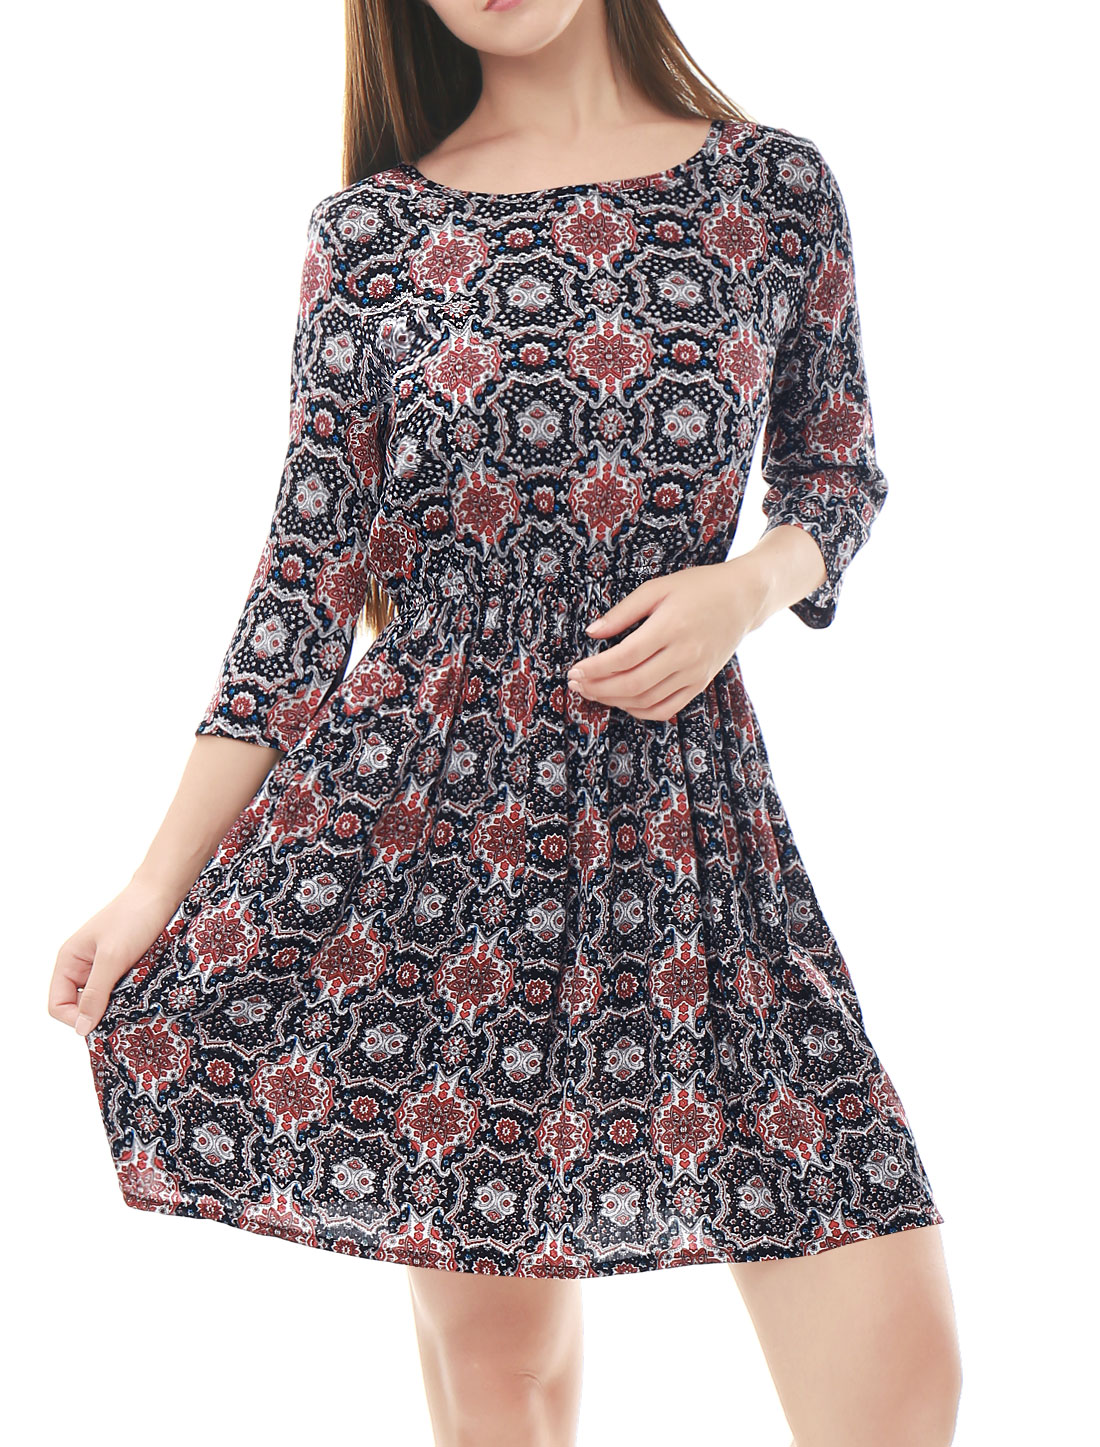 Woman Floral Prints 3/4 Sleeves Elastic Waist A Line Dress Black XS